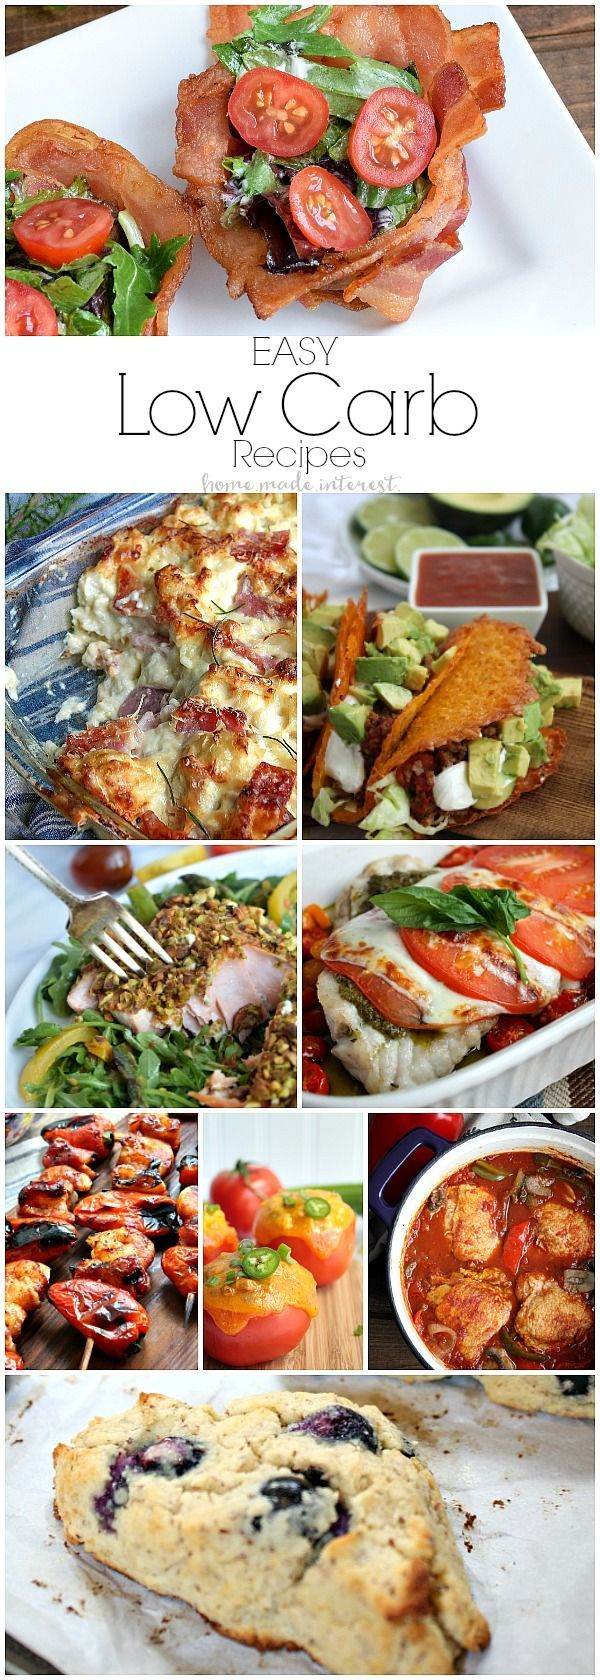 Easy low-carb recipes atkins diet